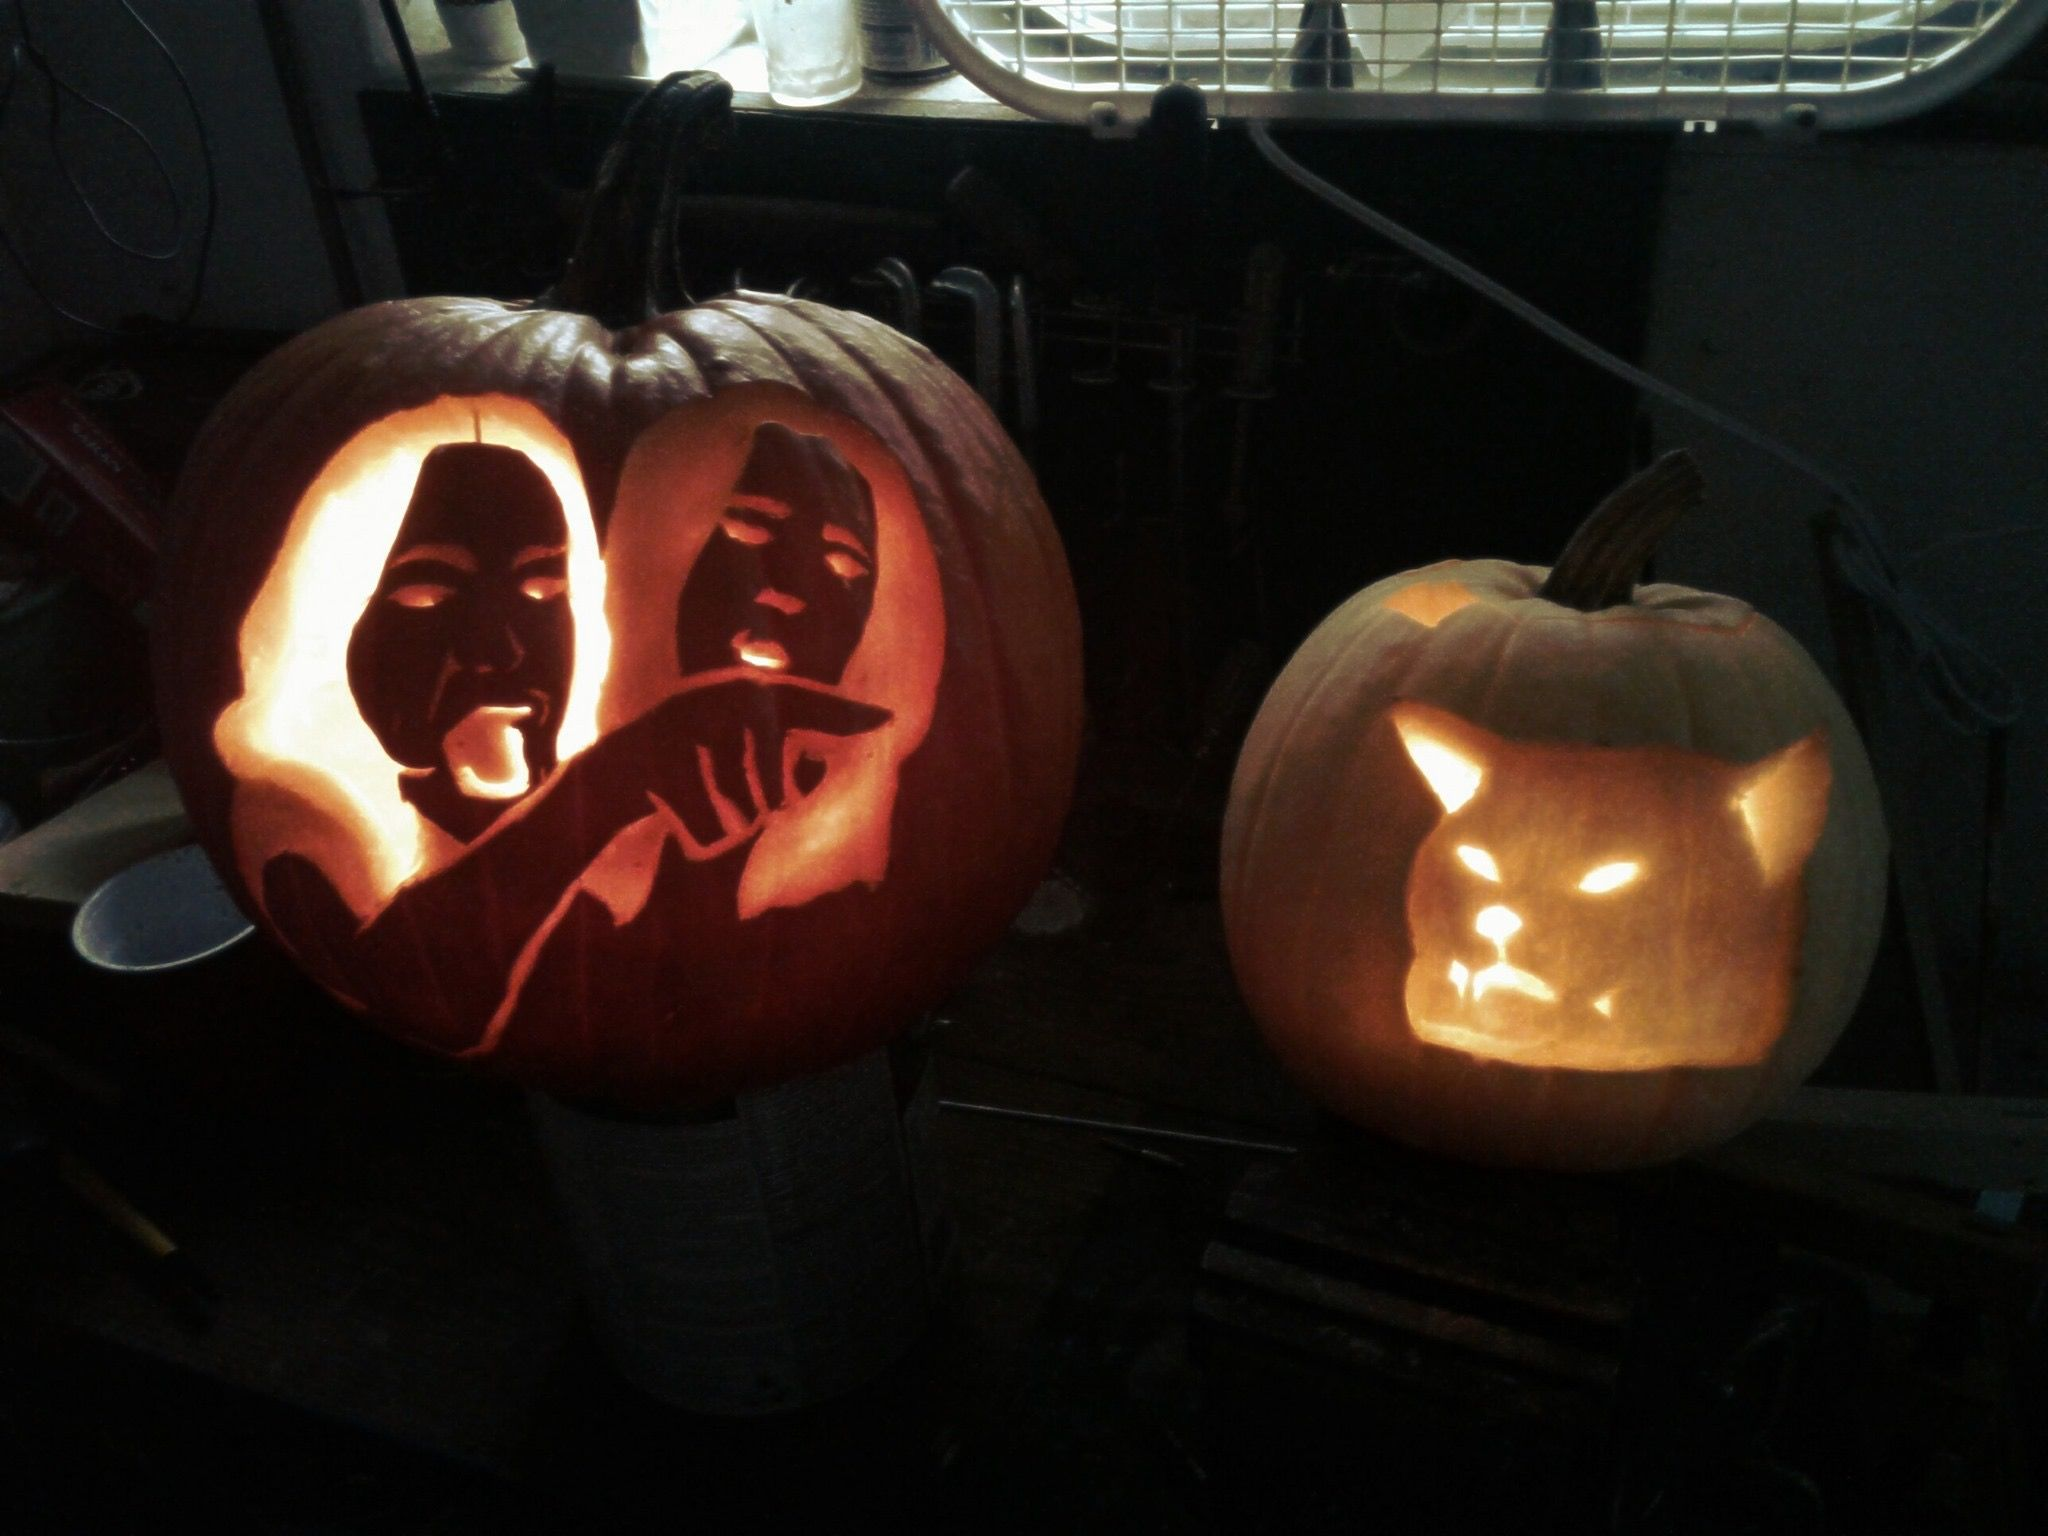 Pin by Alexandra Conway on Pumpkin carving (With images